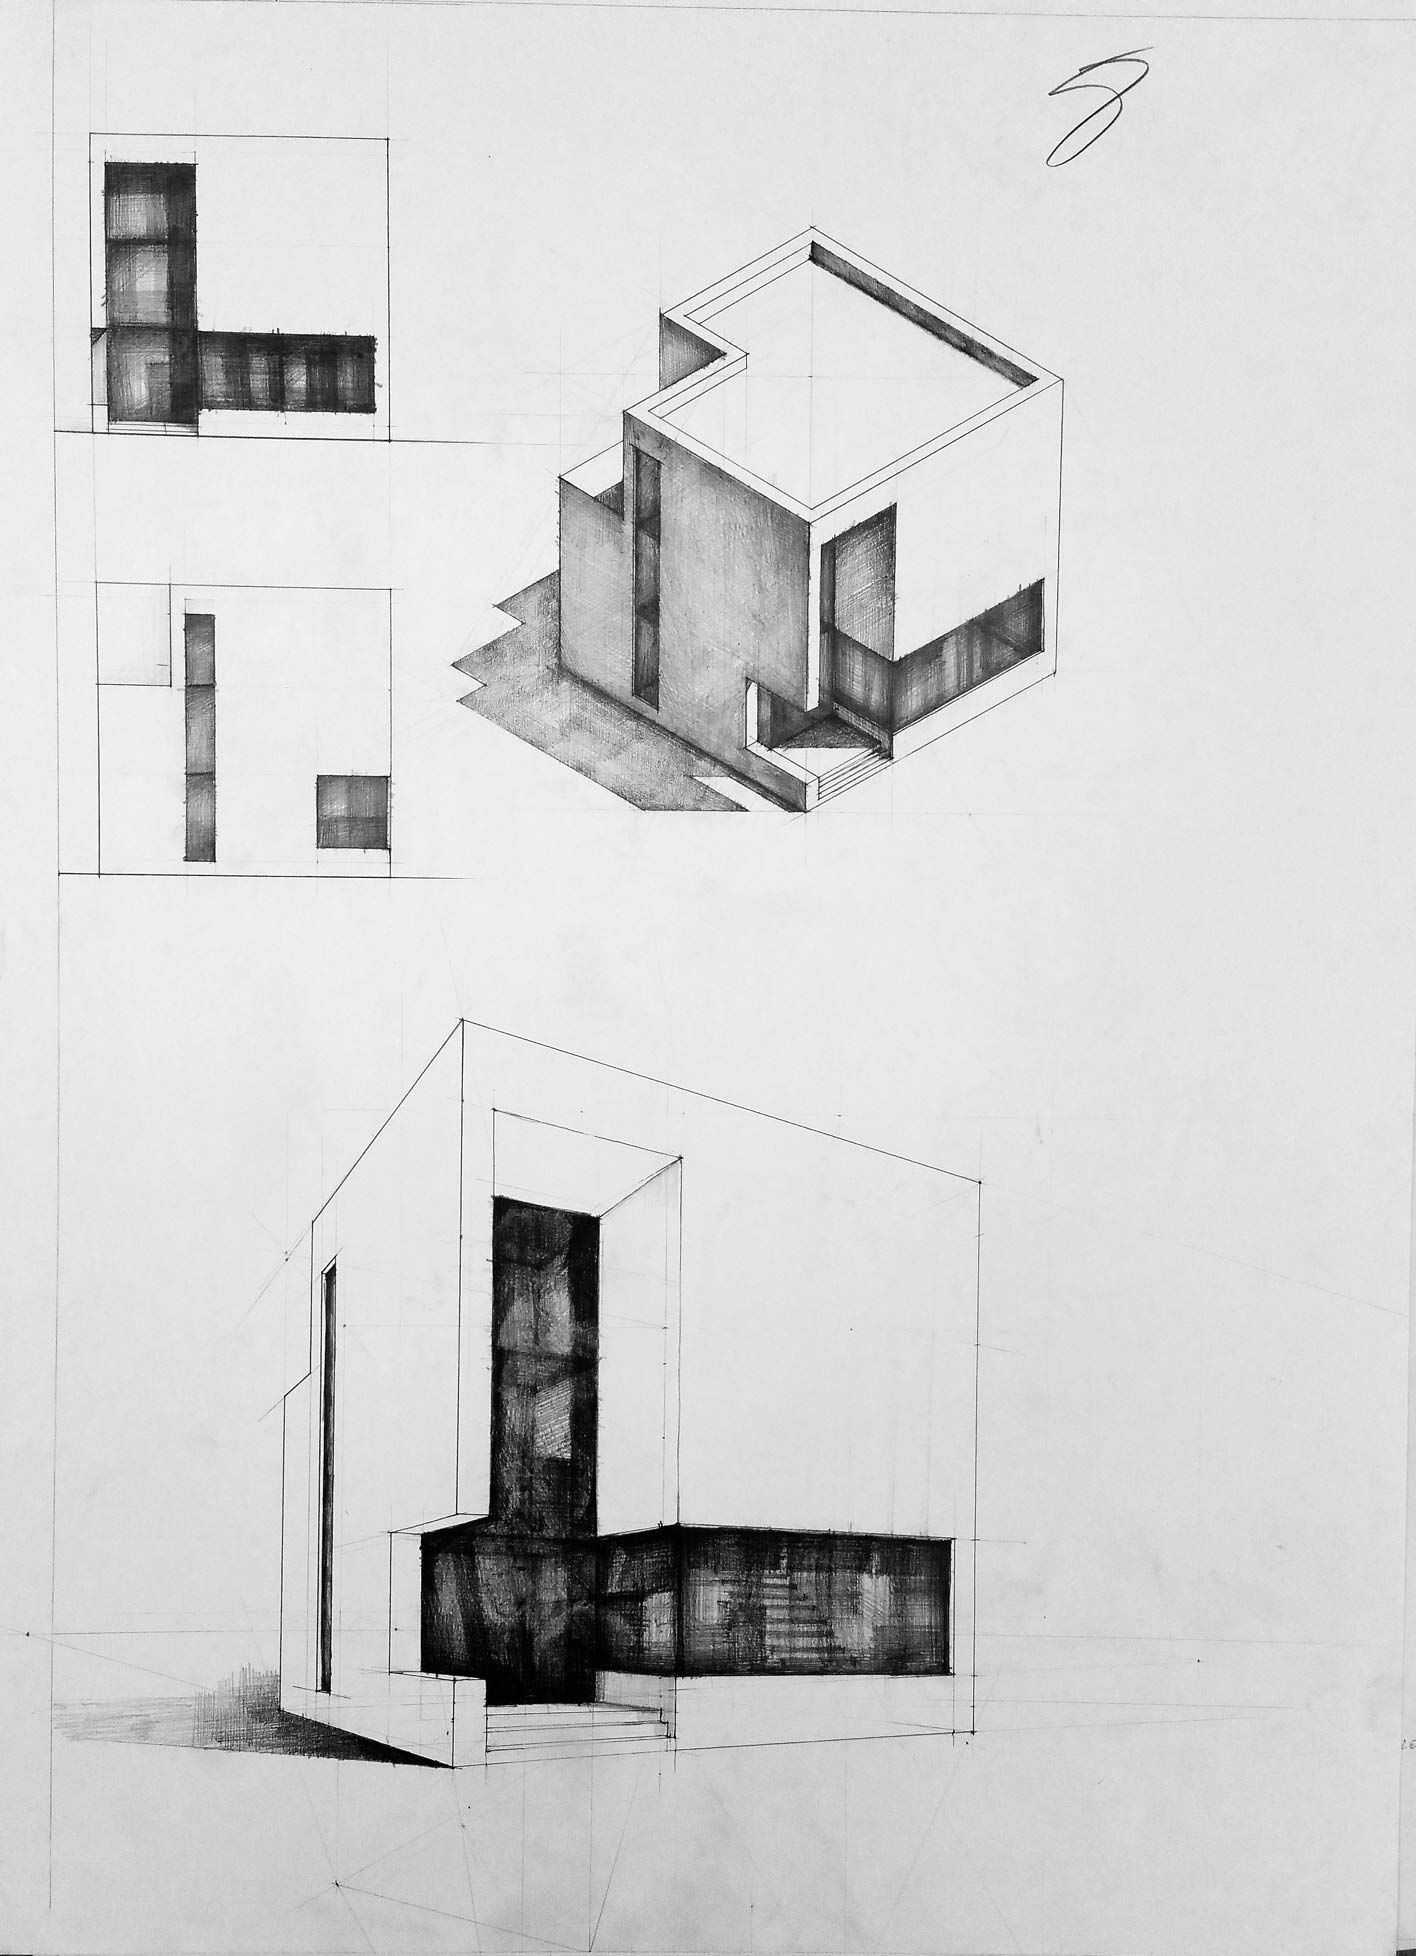 Home Design Architectural Drawing In 2020 Architecture Design Sketch Architecture Sketch Architecture Drawing